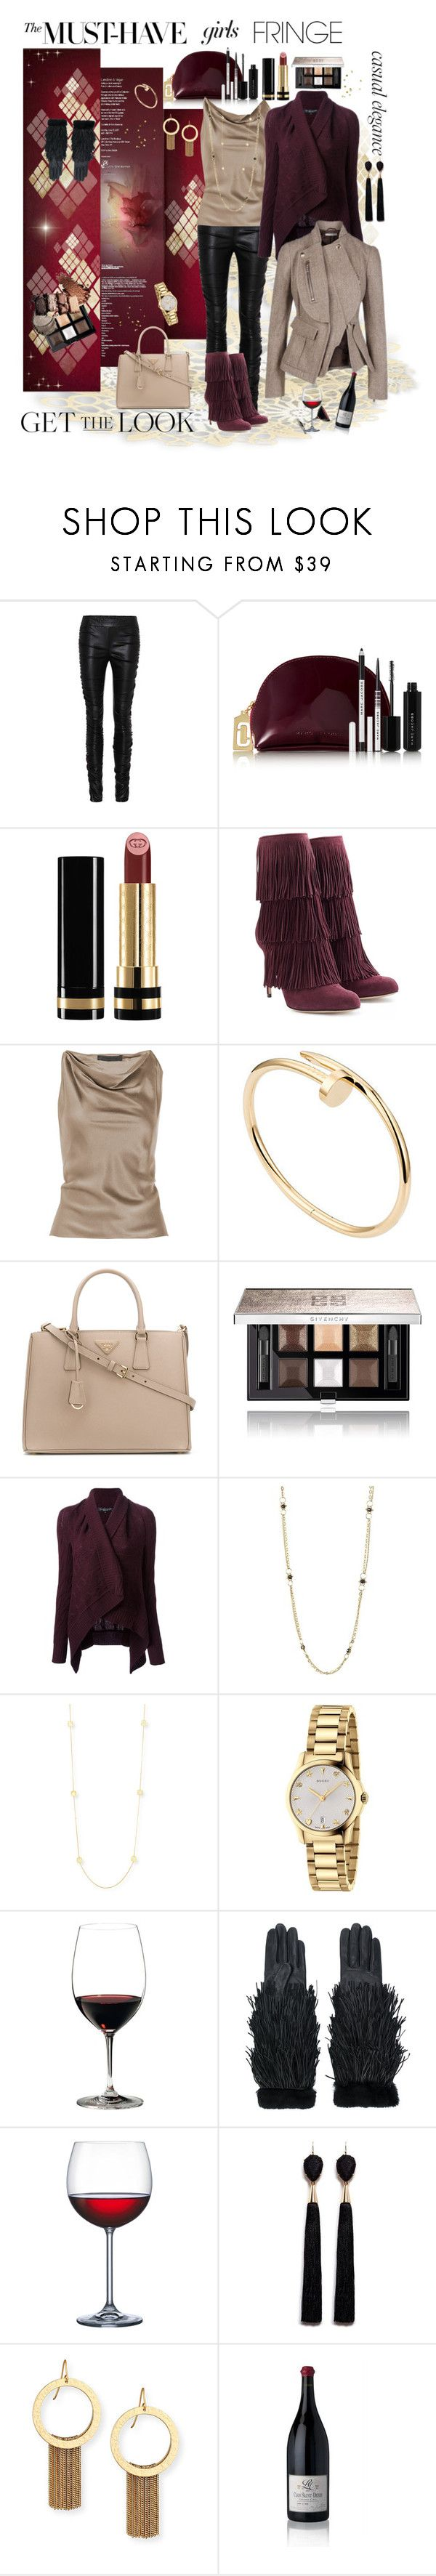 """""""Get The Look: Fringe"""" by isabellaalexa ❤ liked on Polyvore featuring The Row, Marc Jacobs, Gucci, Paul Andrew, Alexander Wang, Cartier, Prada, Givenchy, Ralph Lauren Black Label and Amali"""